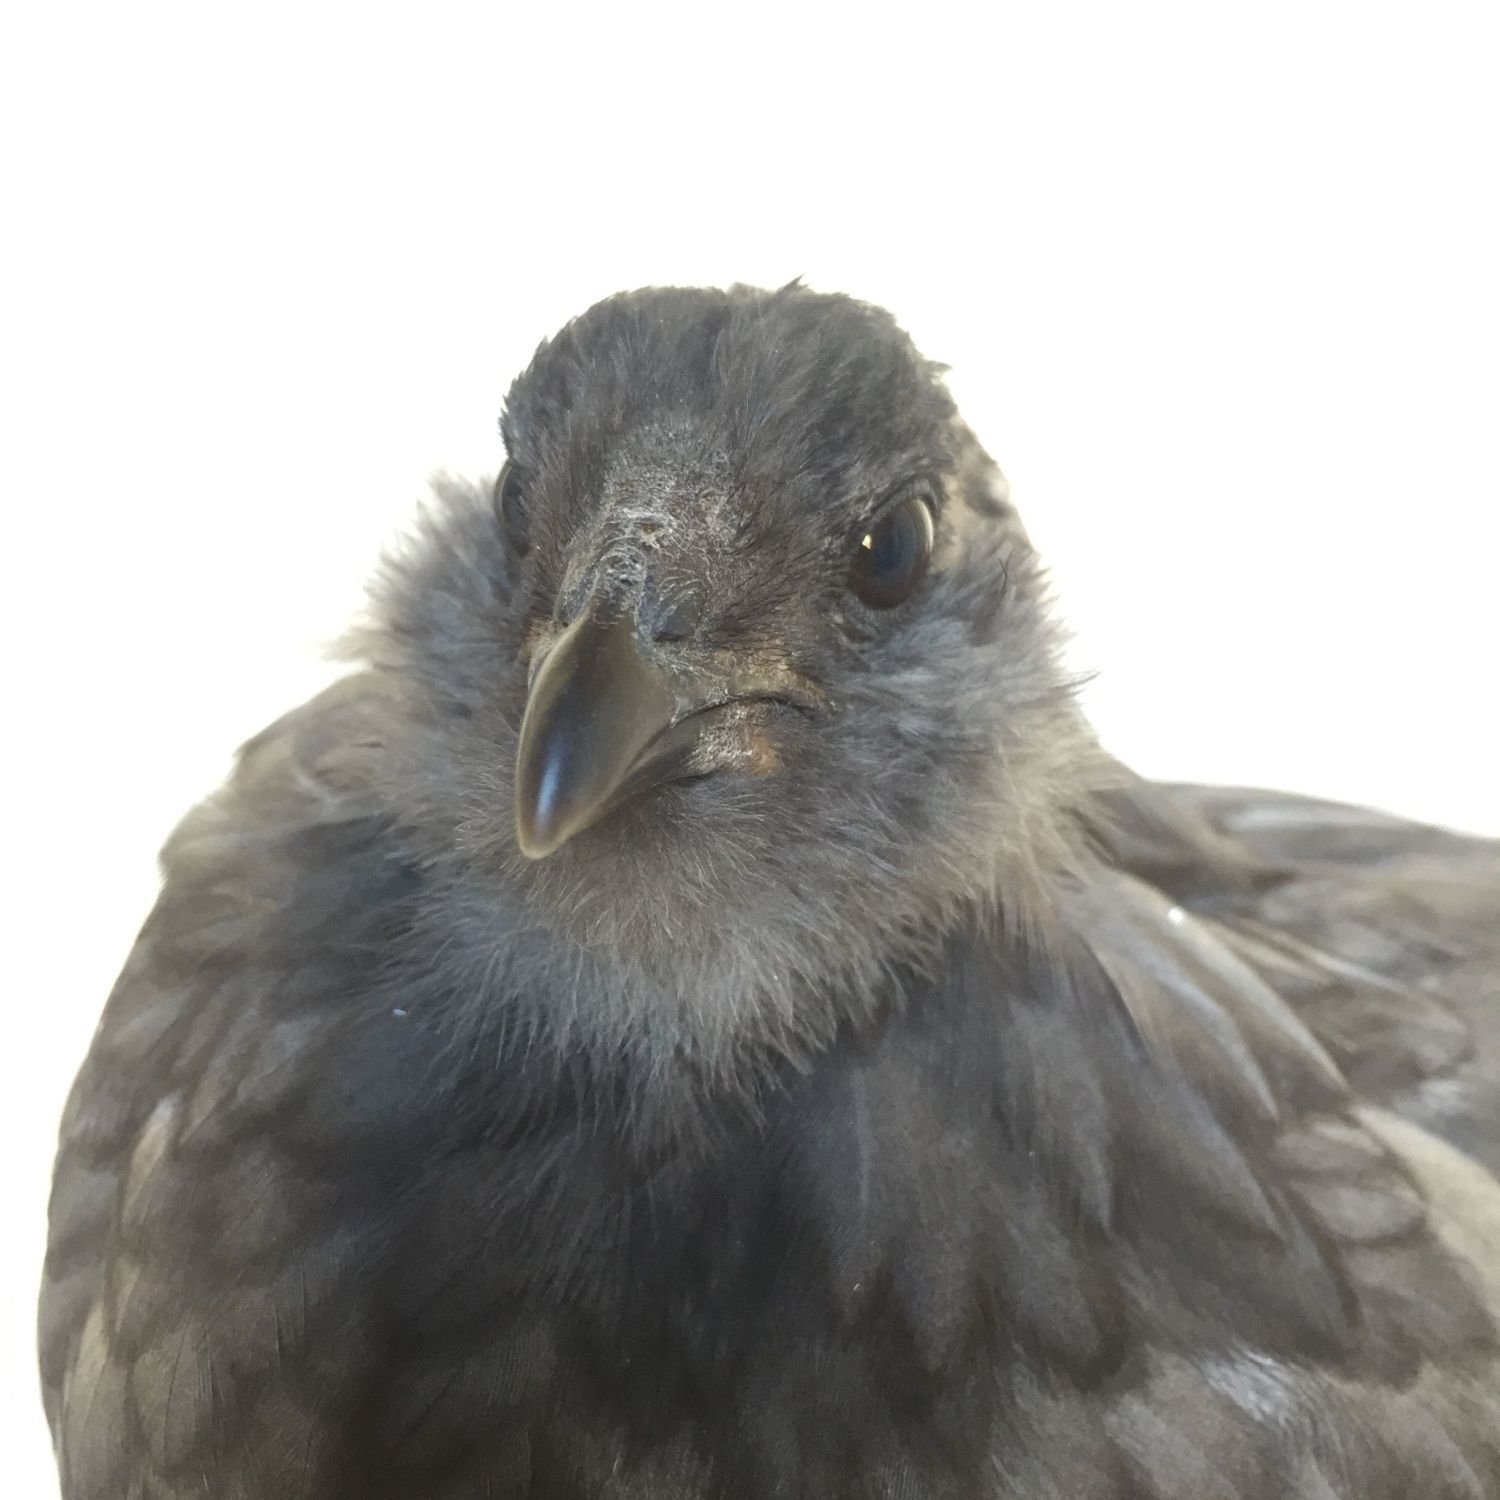 Blue Easter Egger Ameraucana Or What And Is S He A